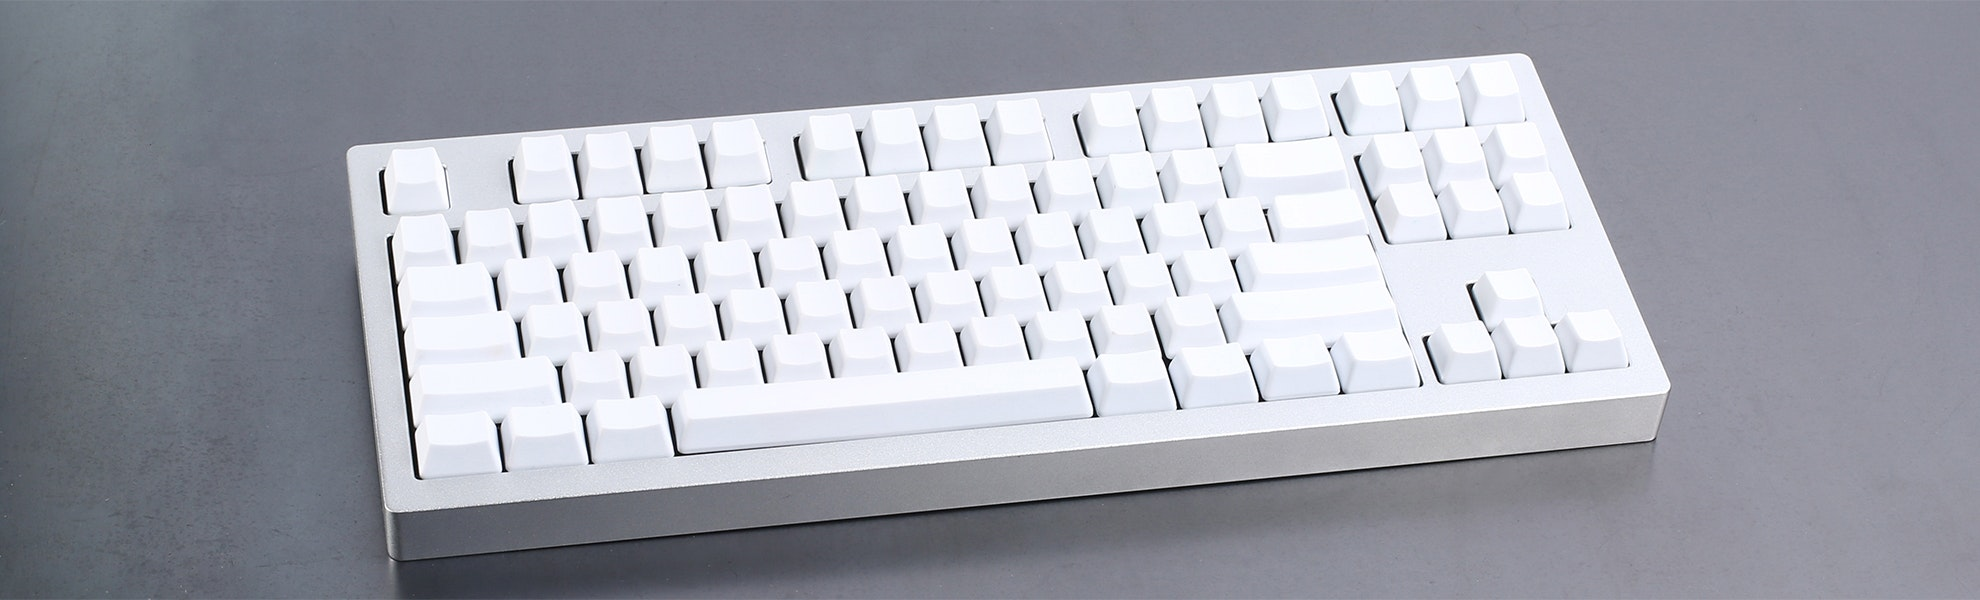 MKC Geekey 87A Full Metal Keyboard